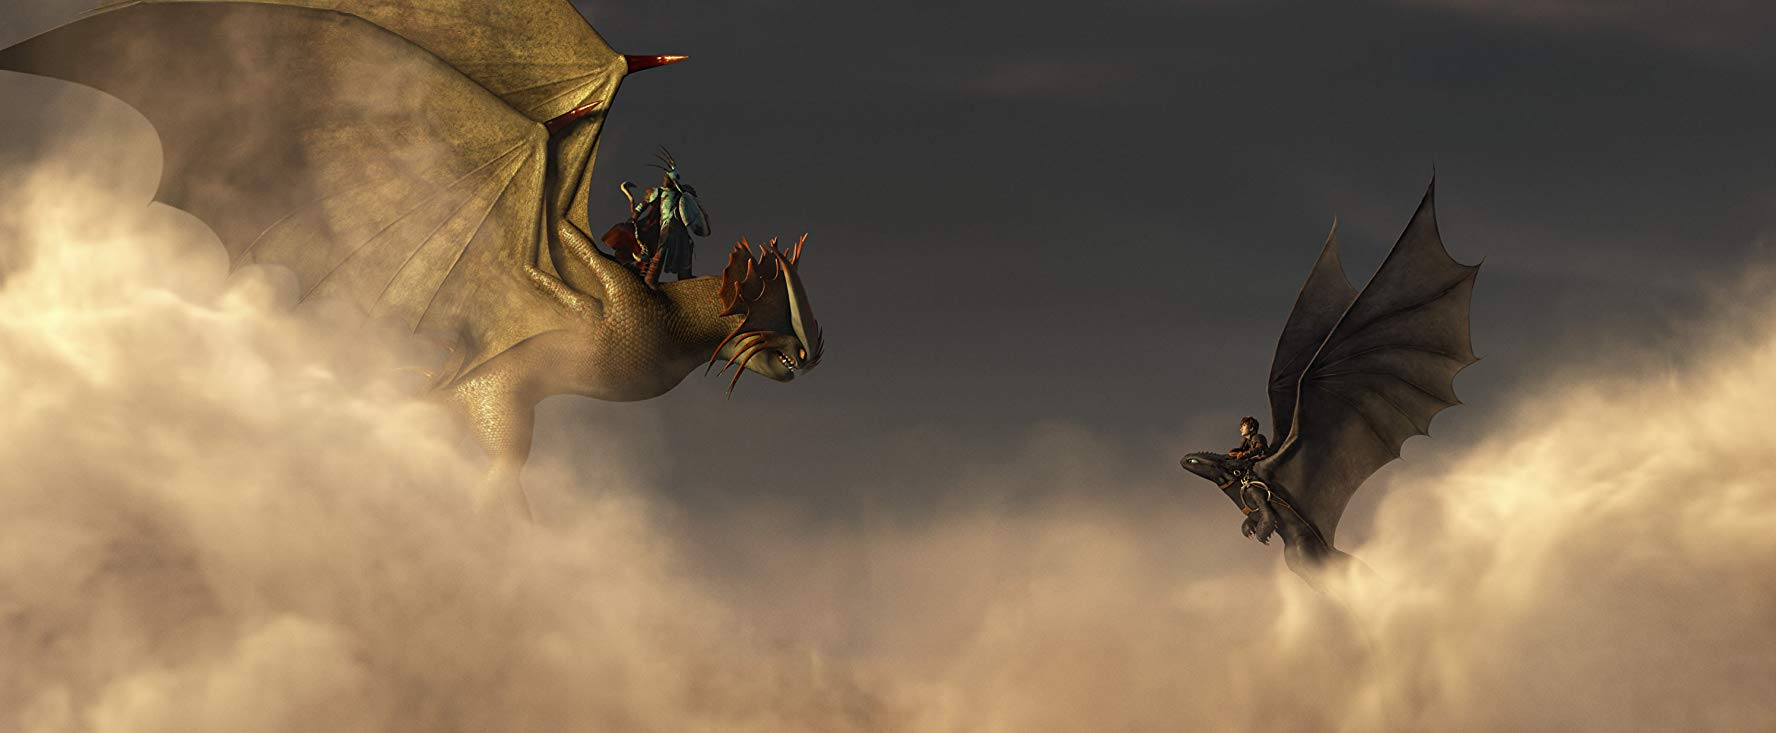 Ejderhanı Nasıl Eğitirsin 2 – (How to Train Your Dragon 2)